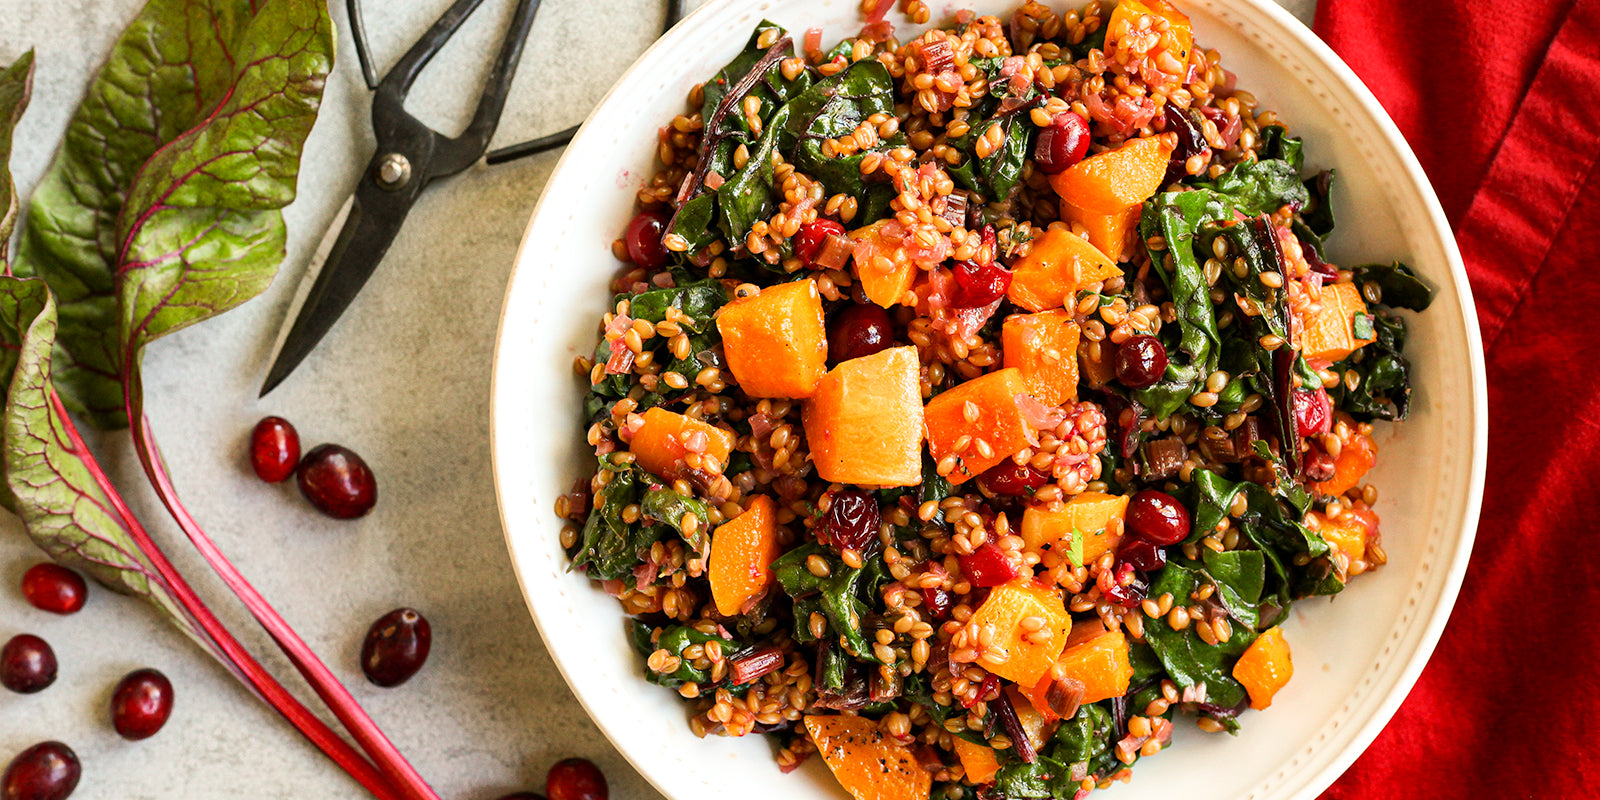 Warm Einkorn, Chard and Butternut Squash Salad